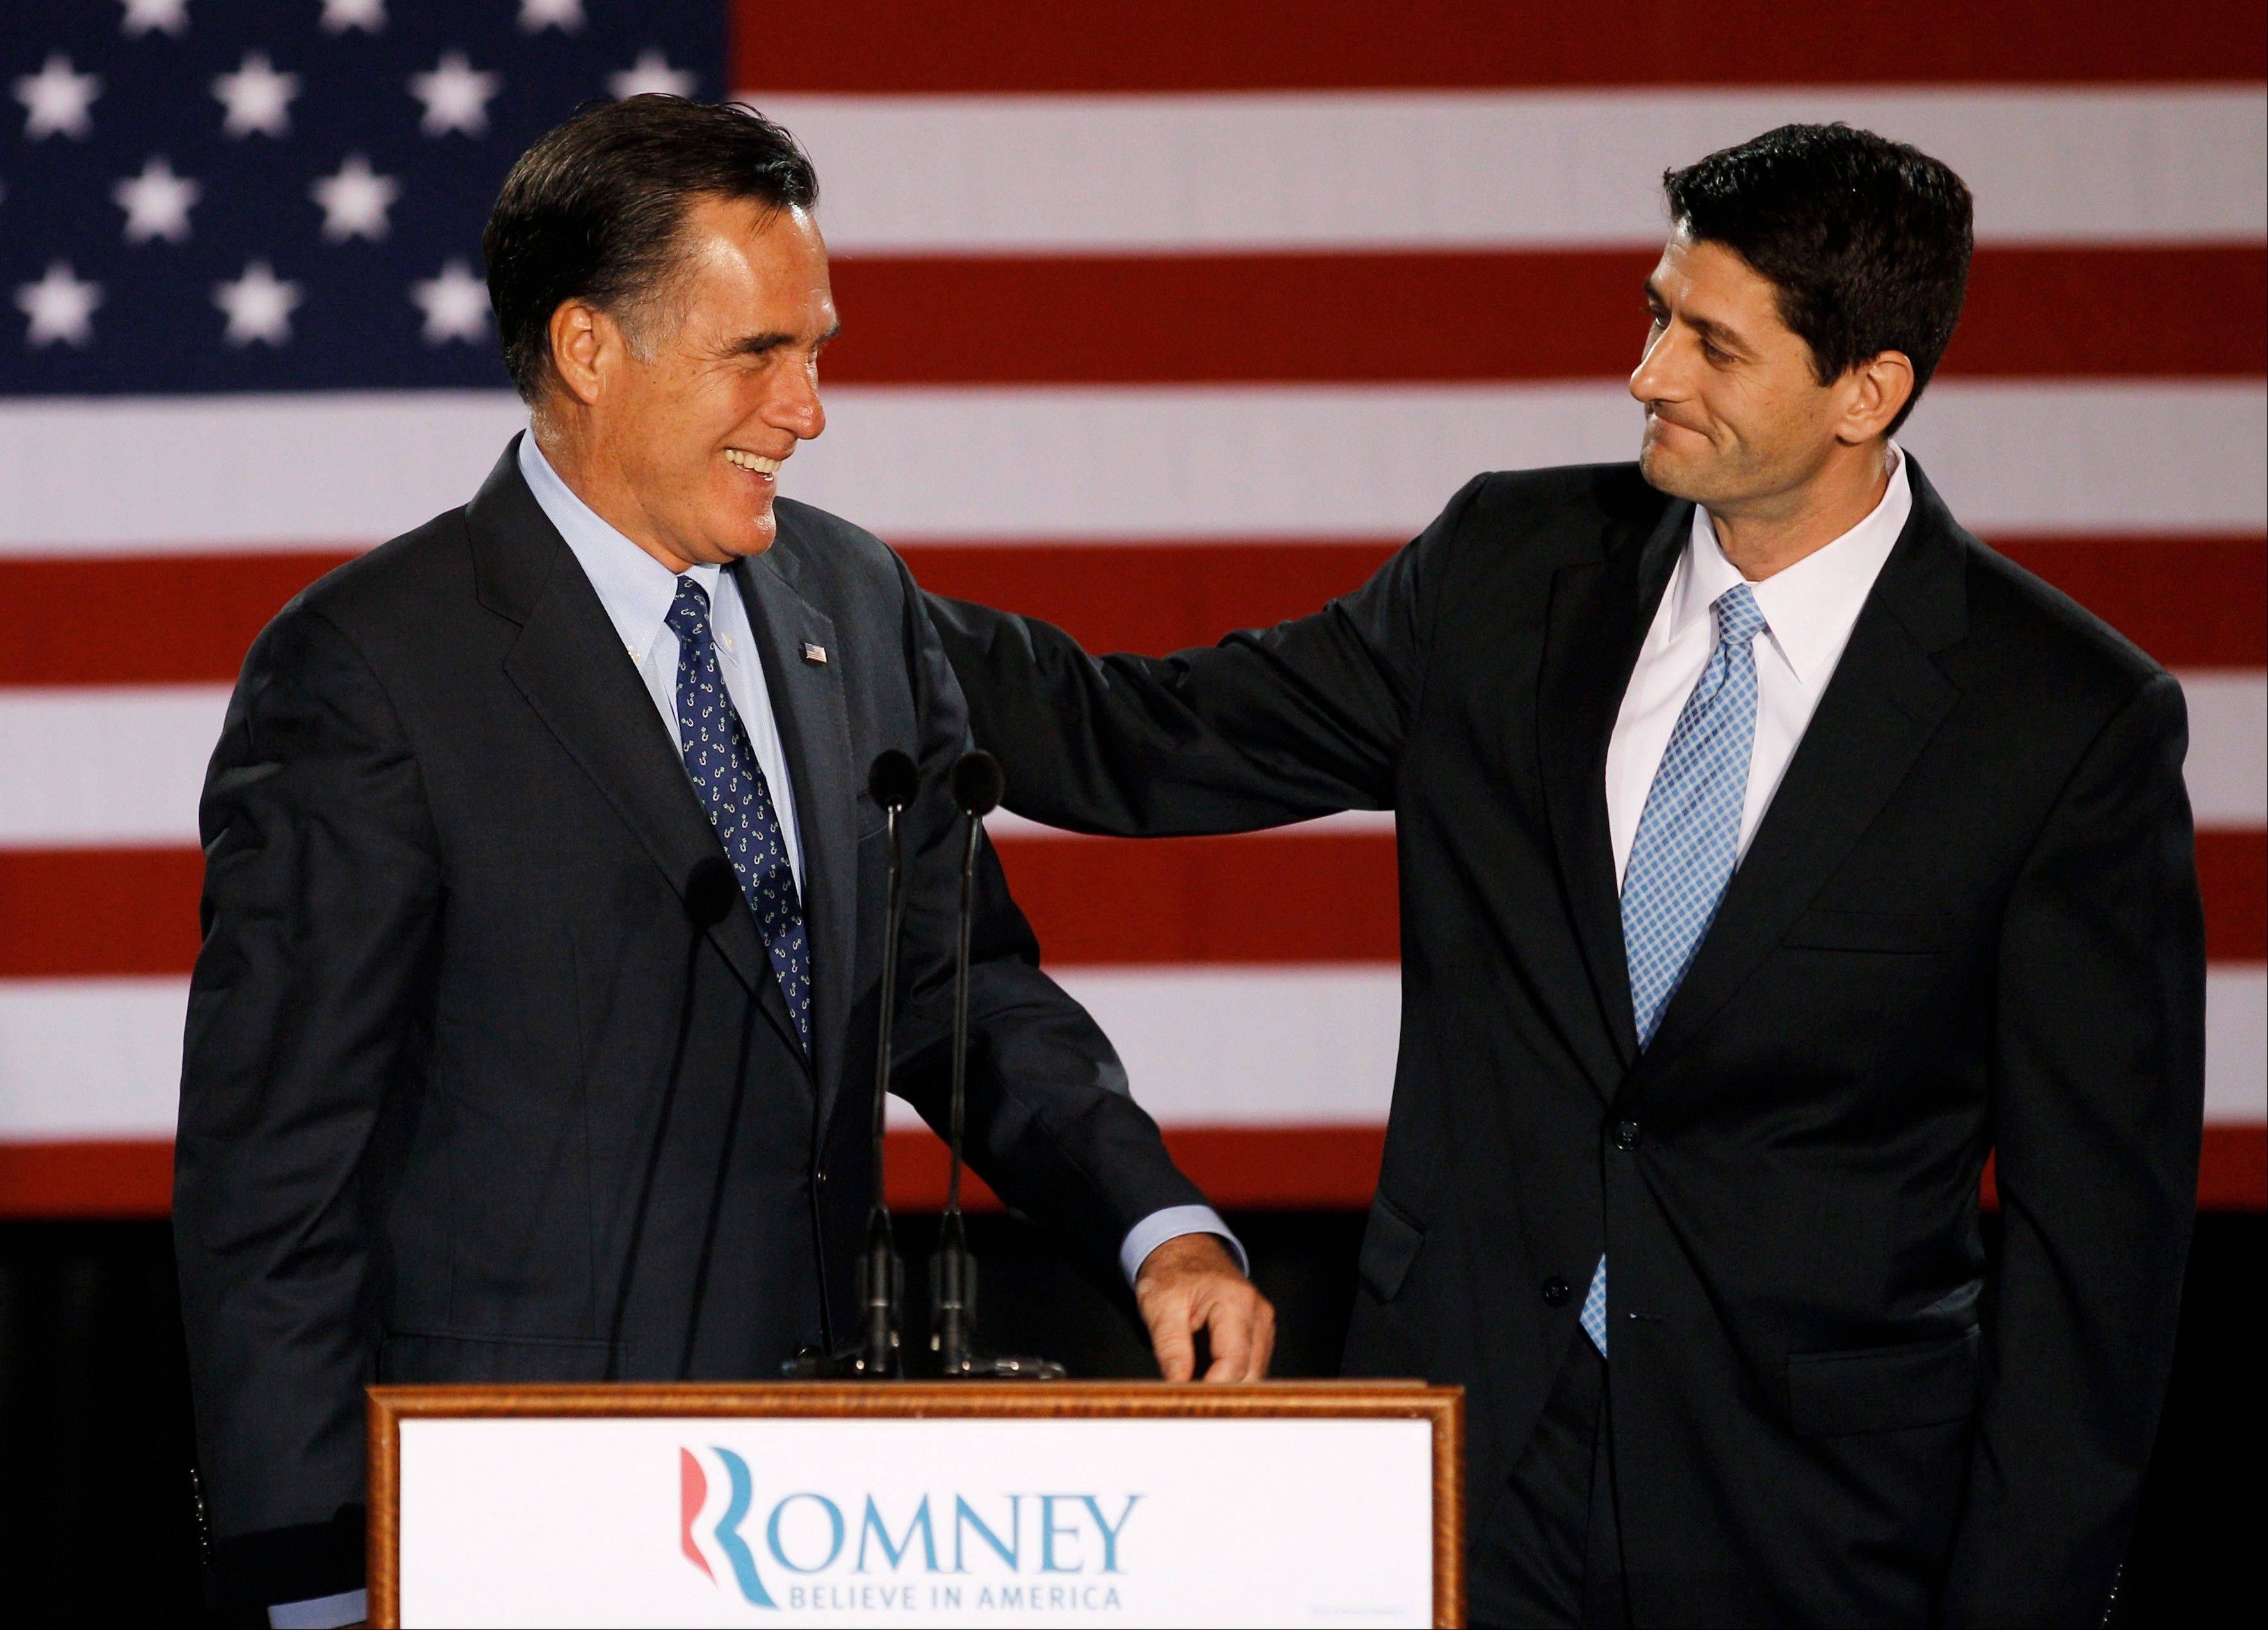 House Budget Committee Chairman Rep. Paul Ryan, R-Wis. introduces Republican presidential candidate, former Massachusetts Gov. Mitt Romney in Milwaukee, in this April 3, 2012 file photo.